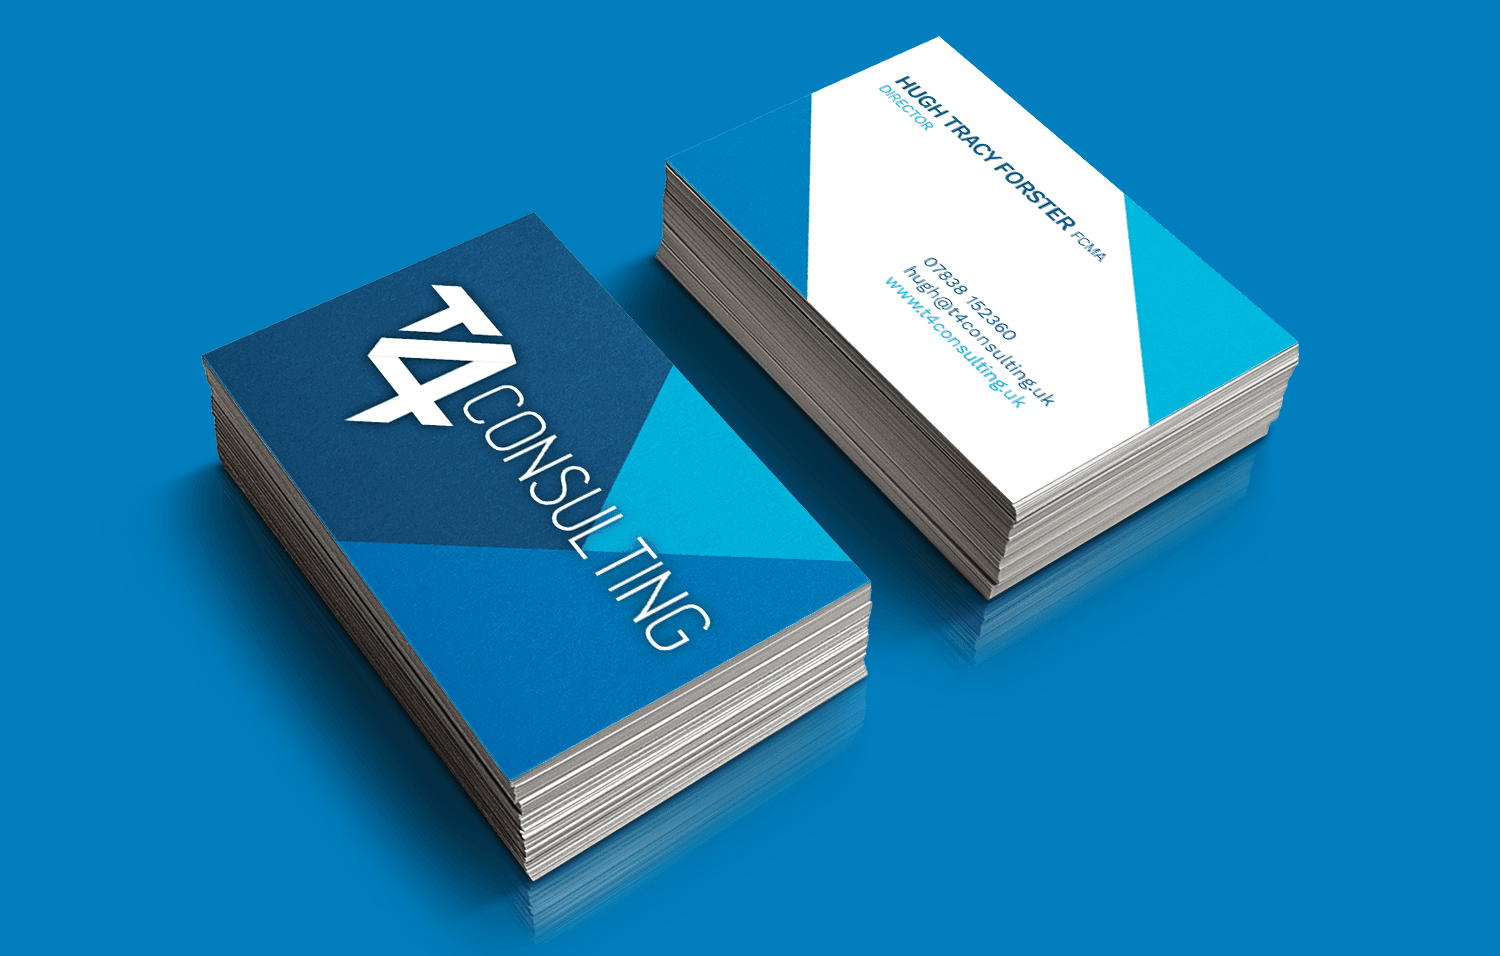 T4 Consulting business cards